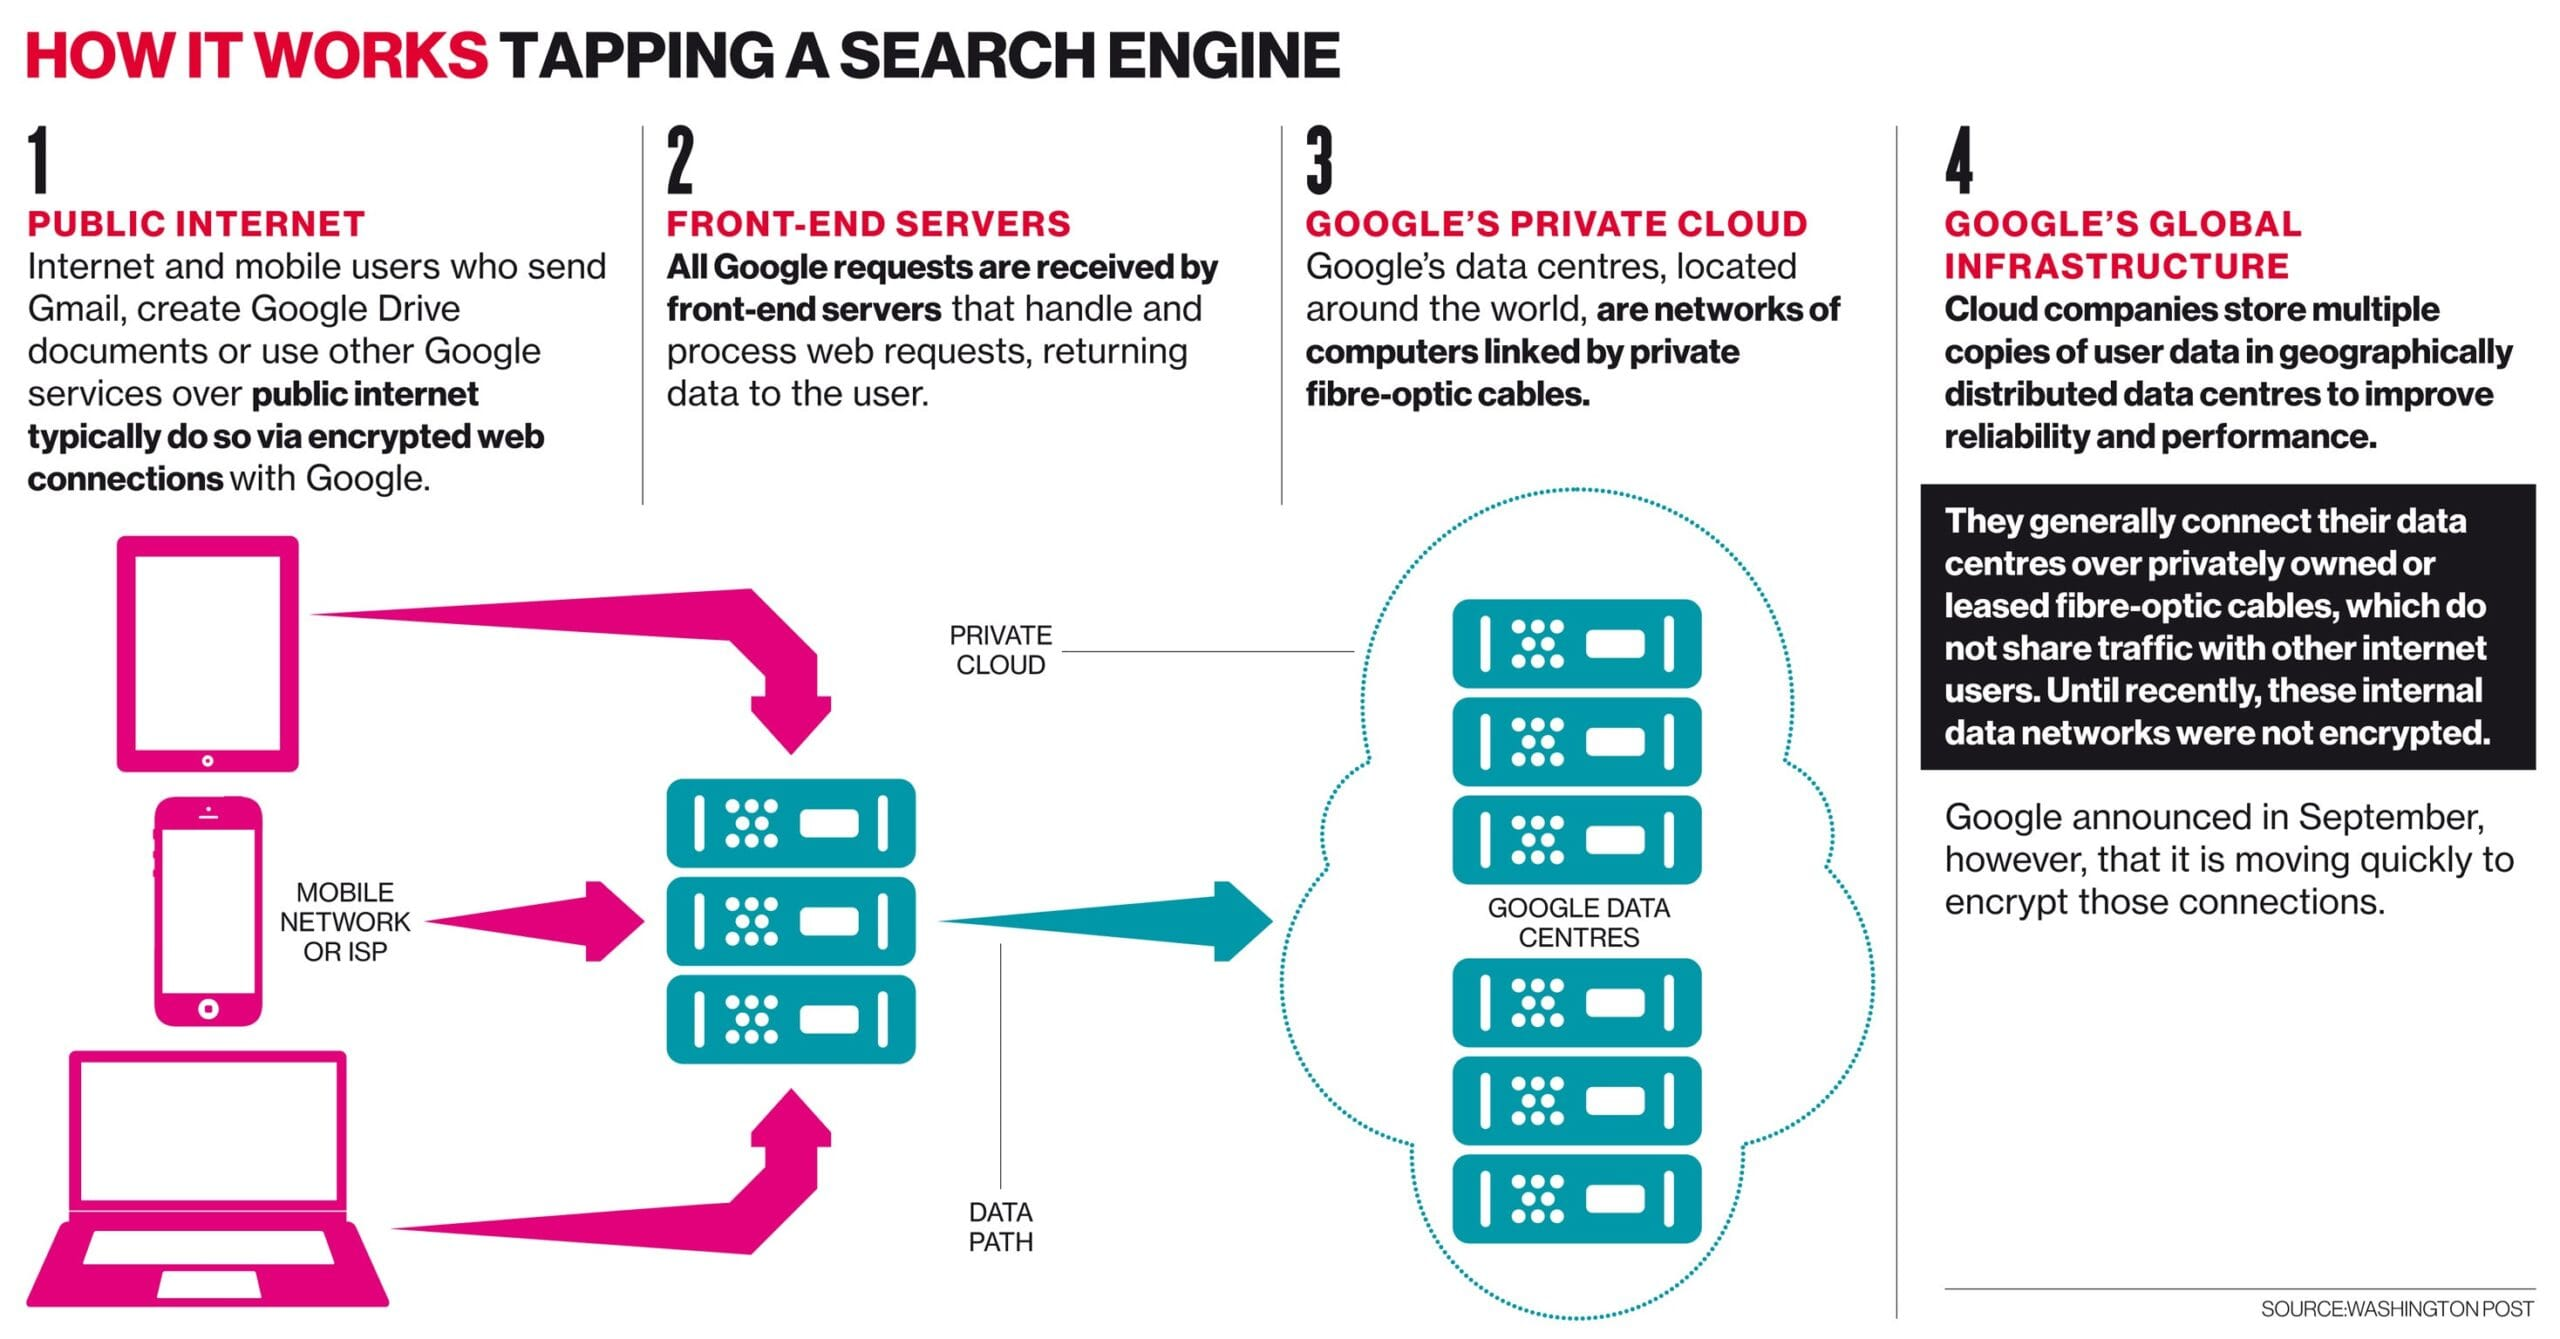 Tapping a search engine